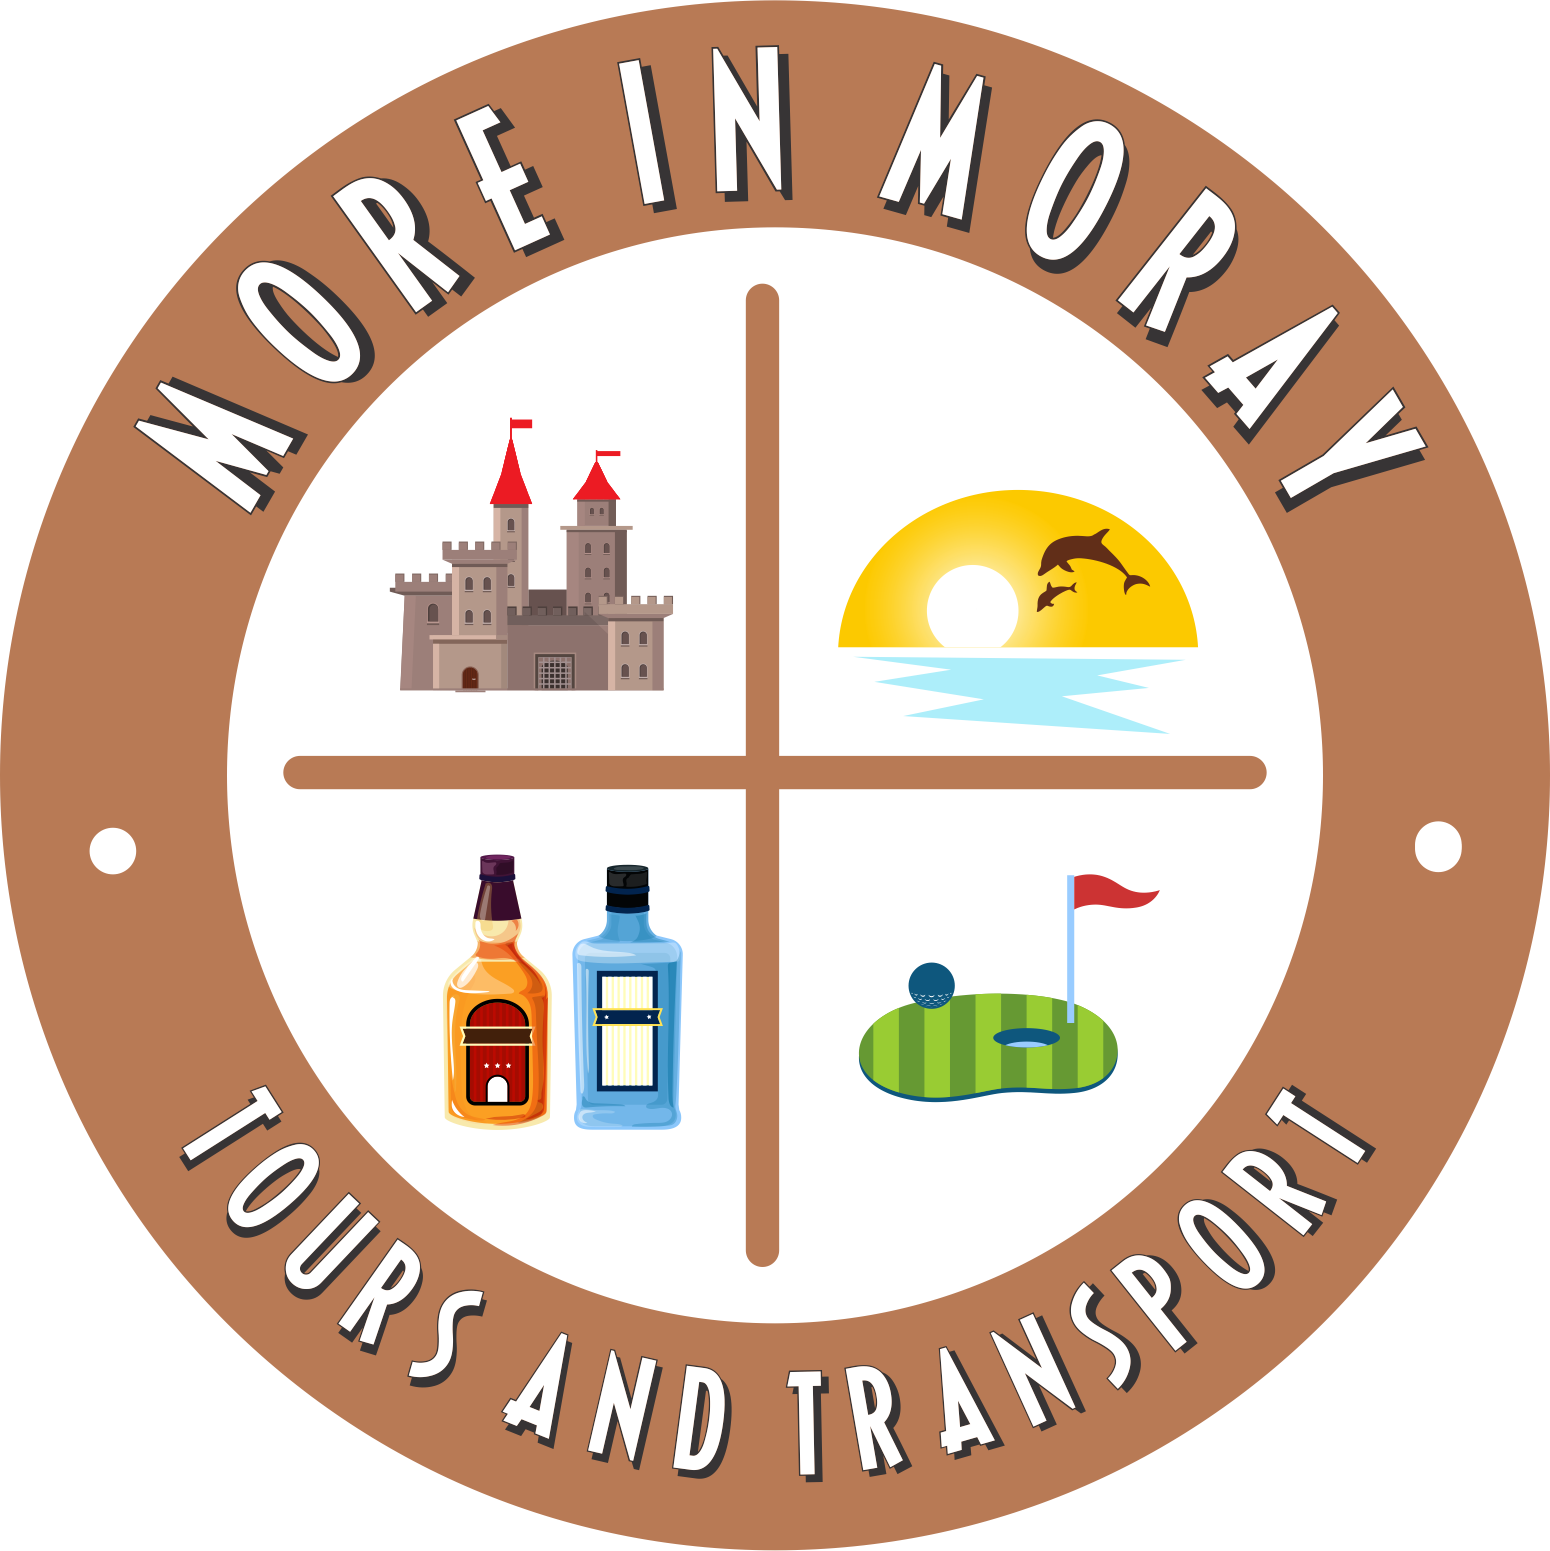 More in Moray Tours and Transport | More Beyond Moray - More in Moray Tours and Transport